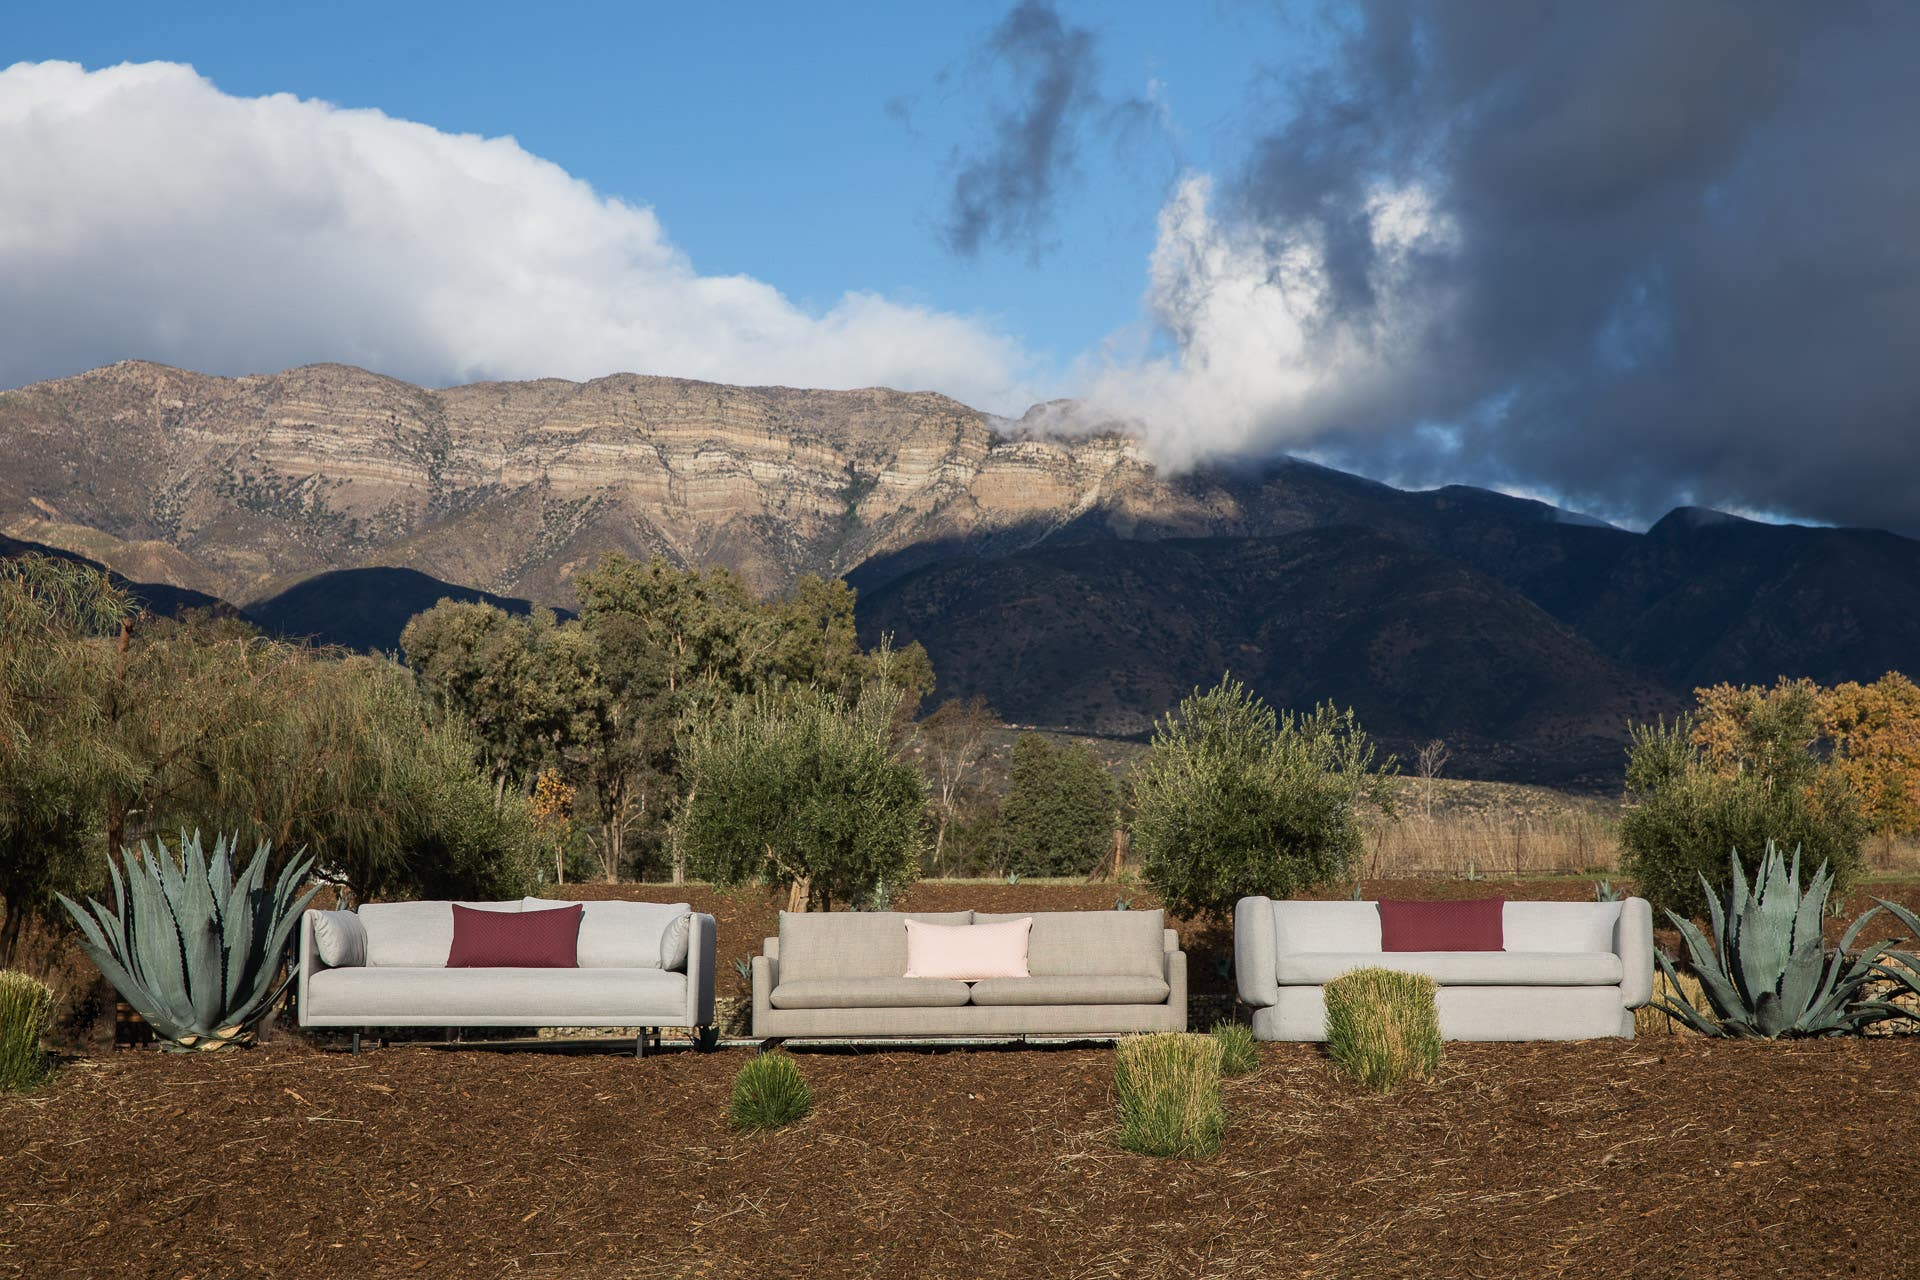 Three Industry West sofas with mountains and clouds in the background